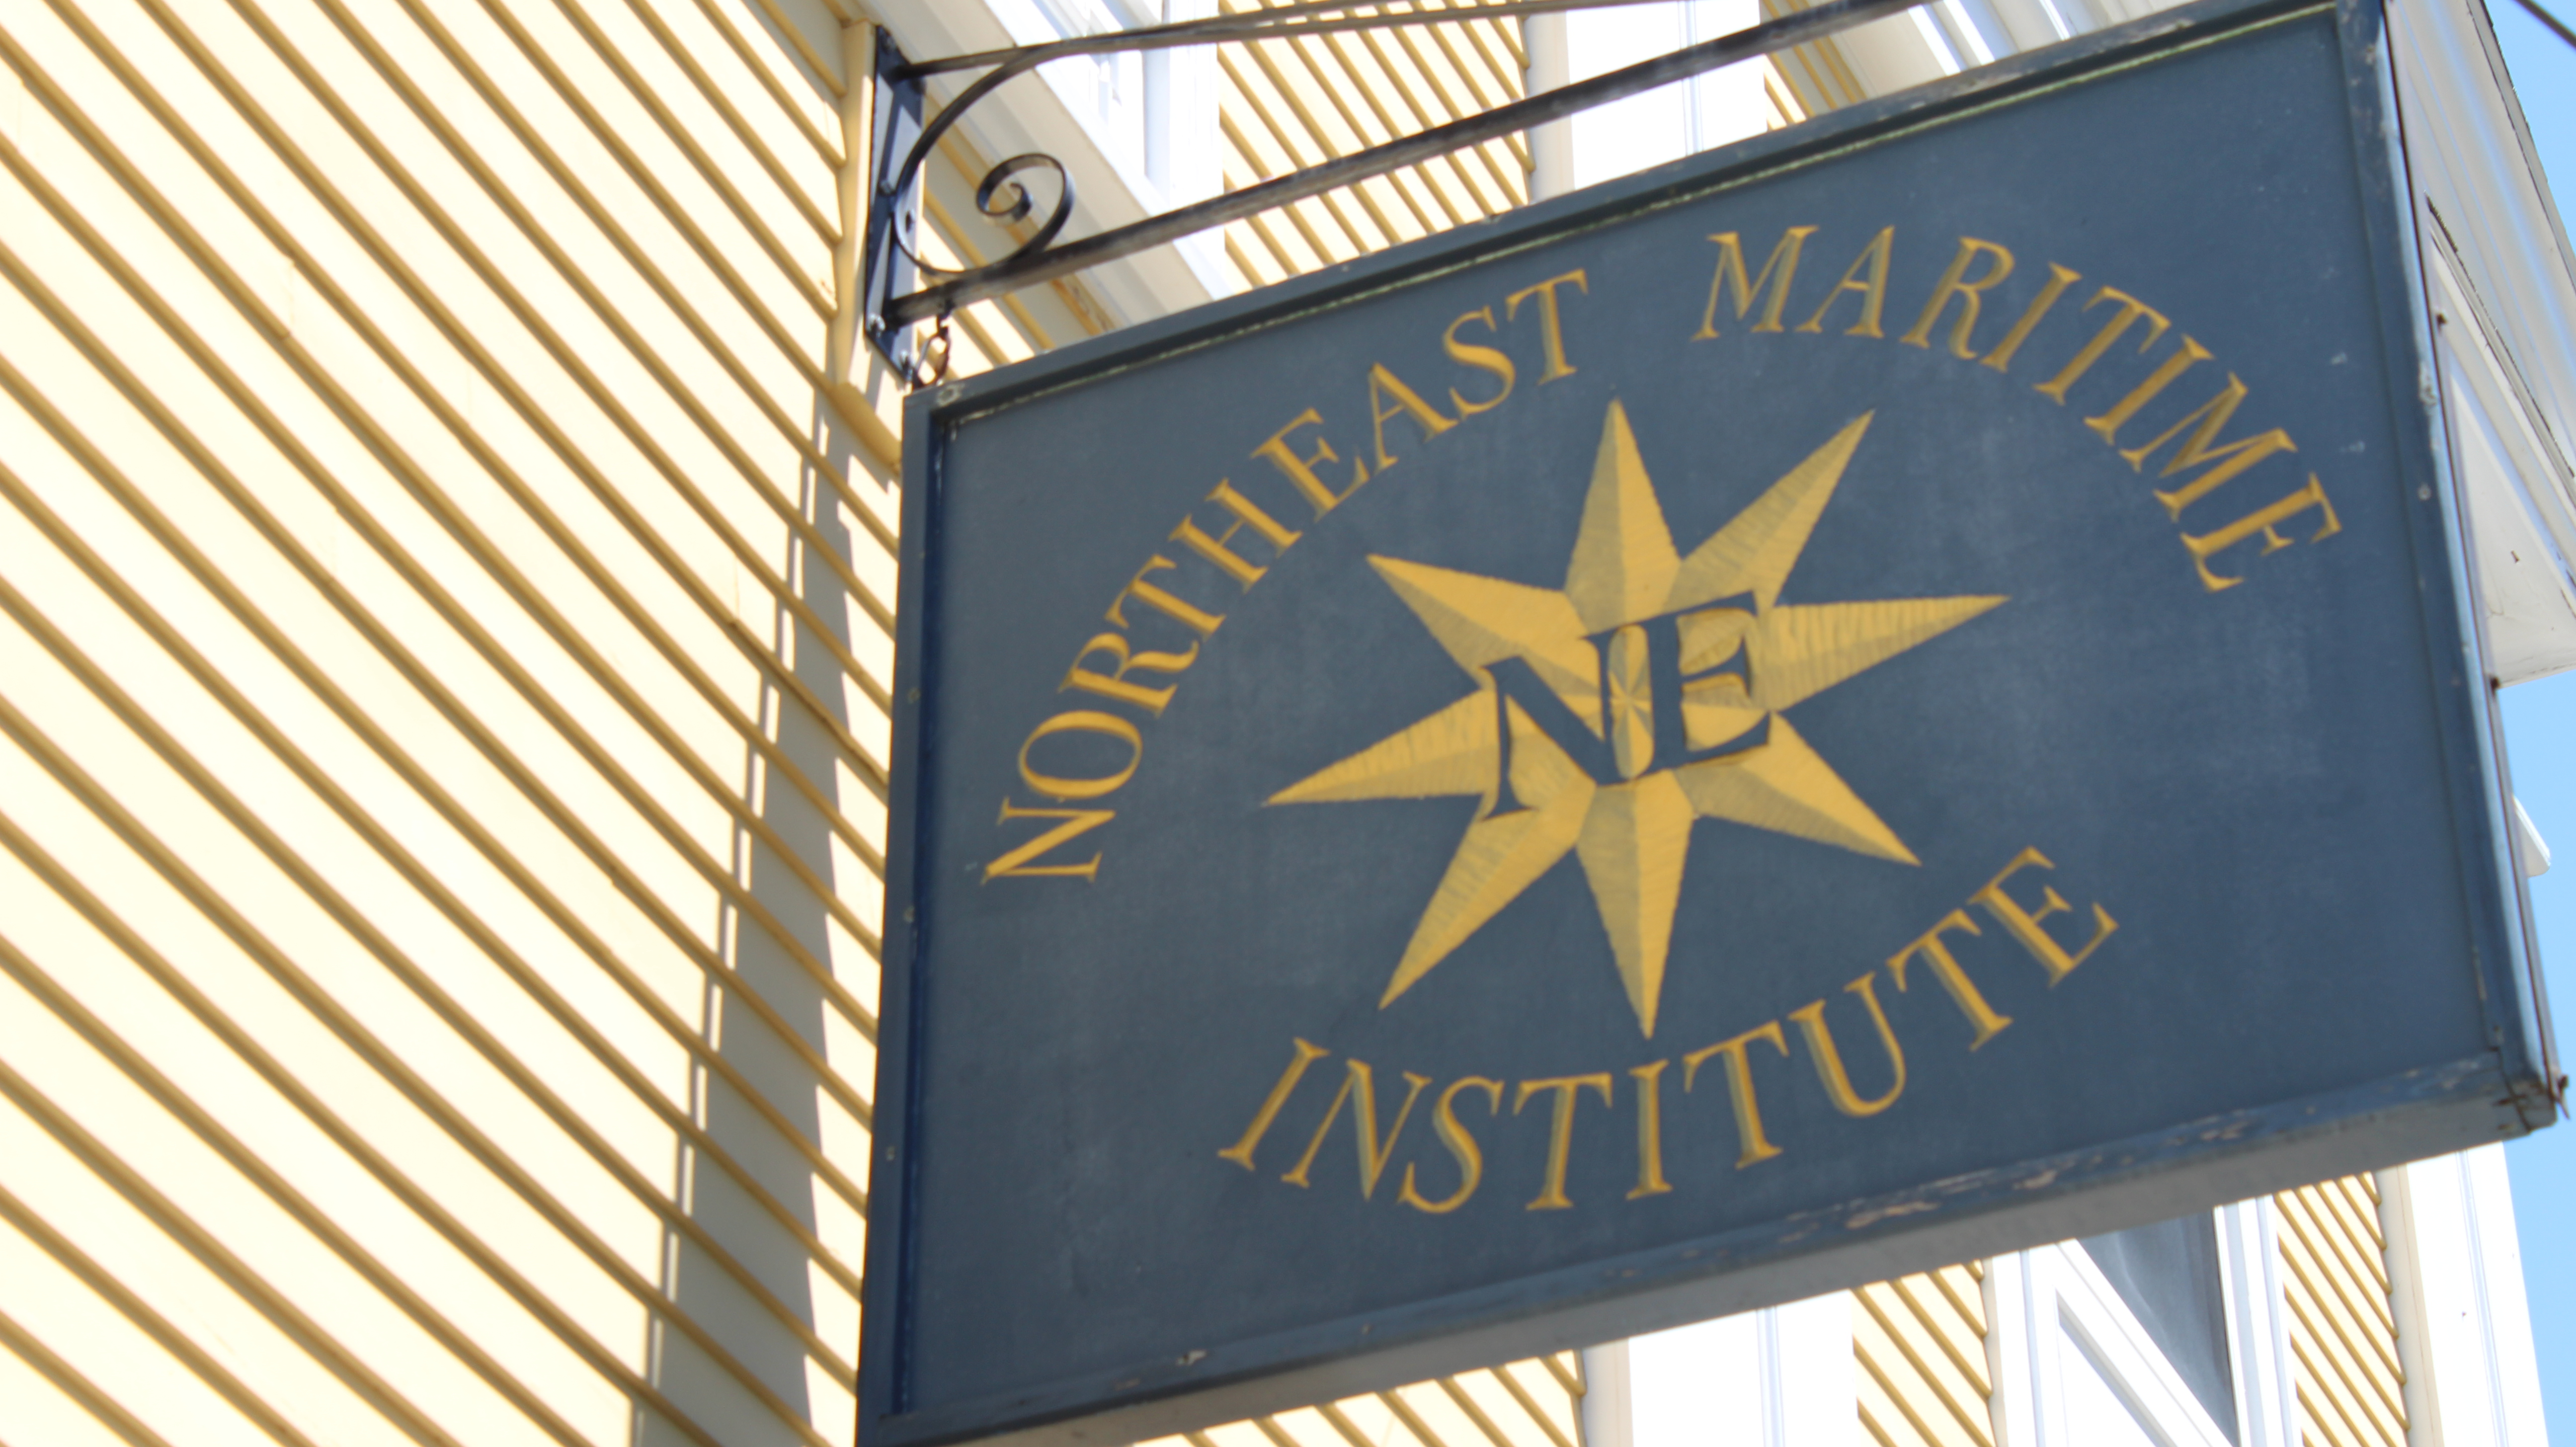 Northeast Maritime Institute Sign Out Front